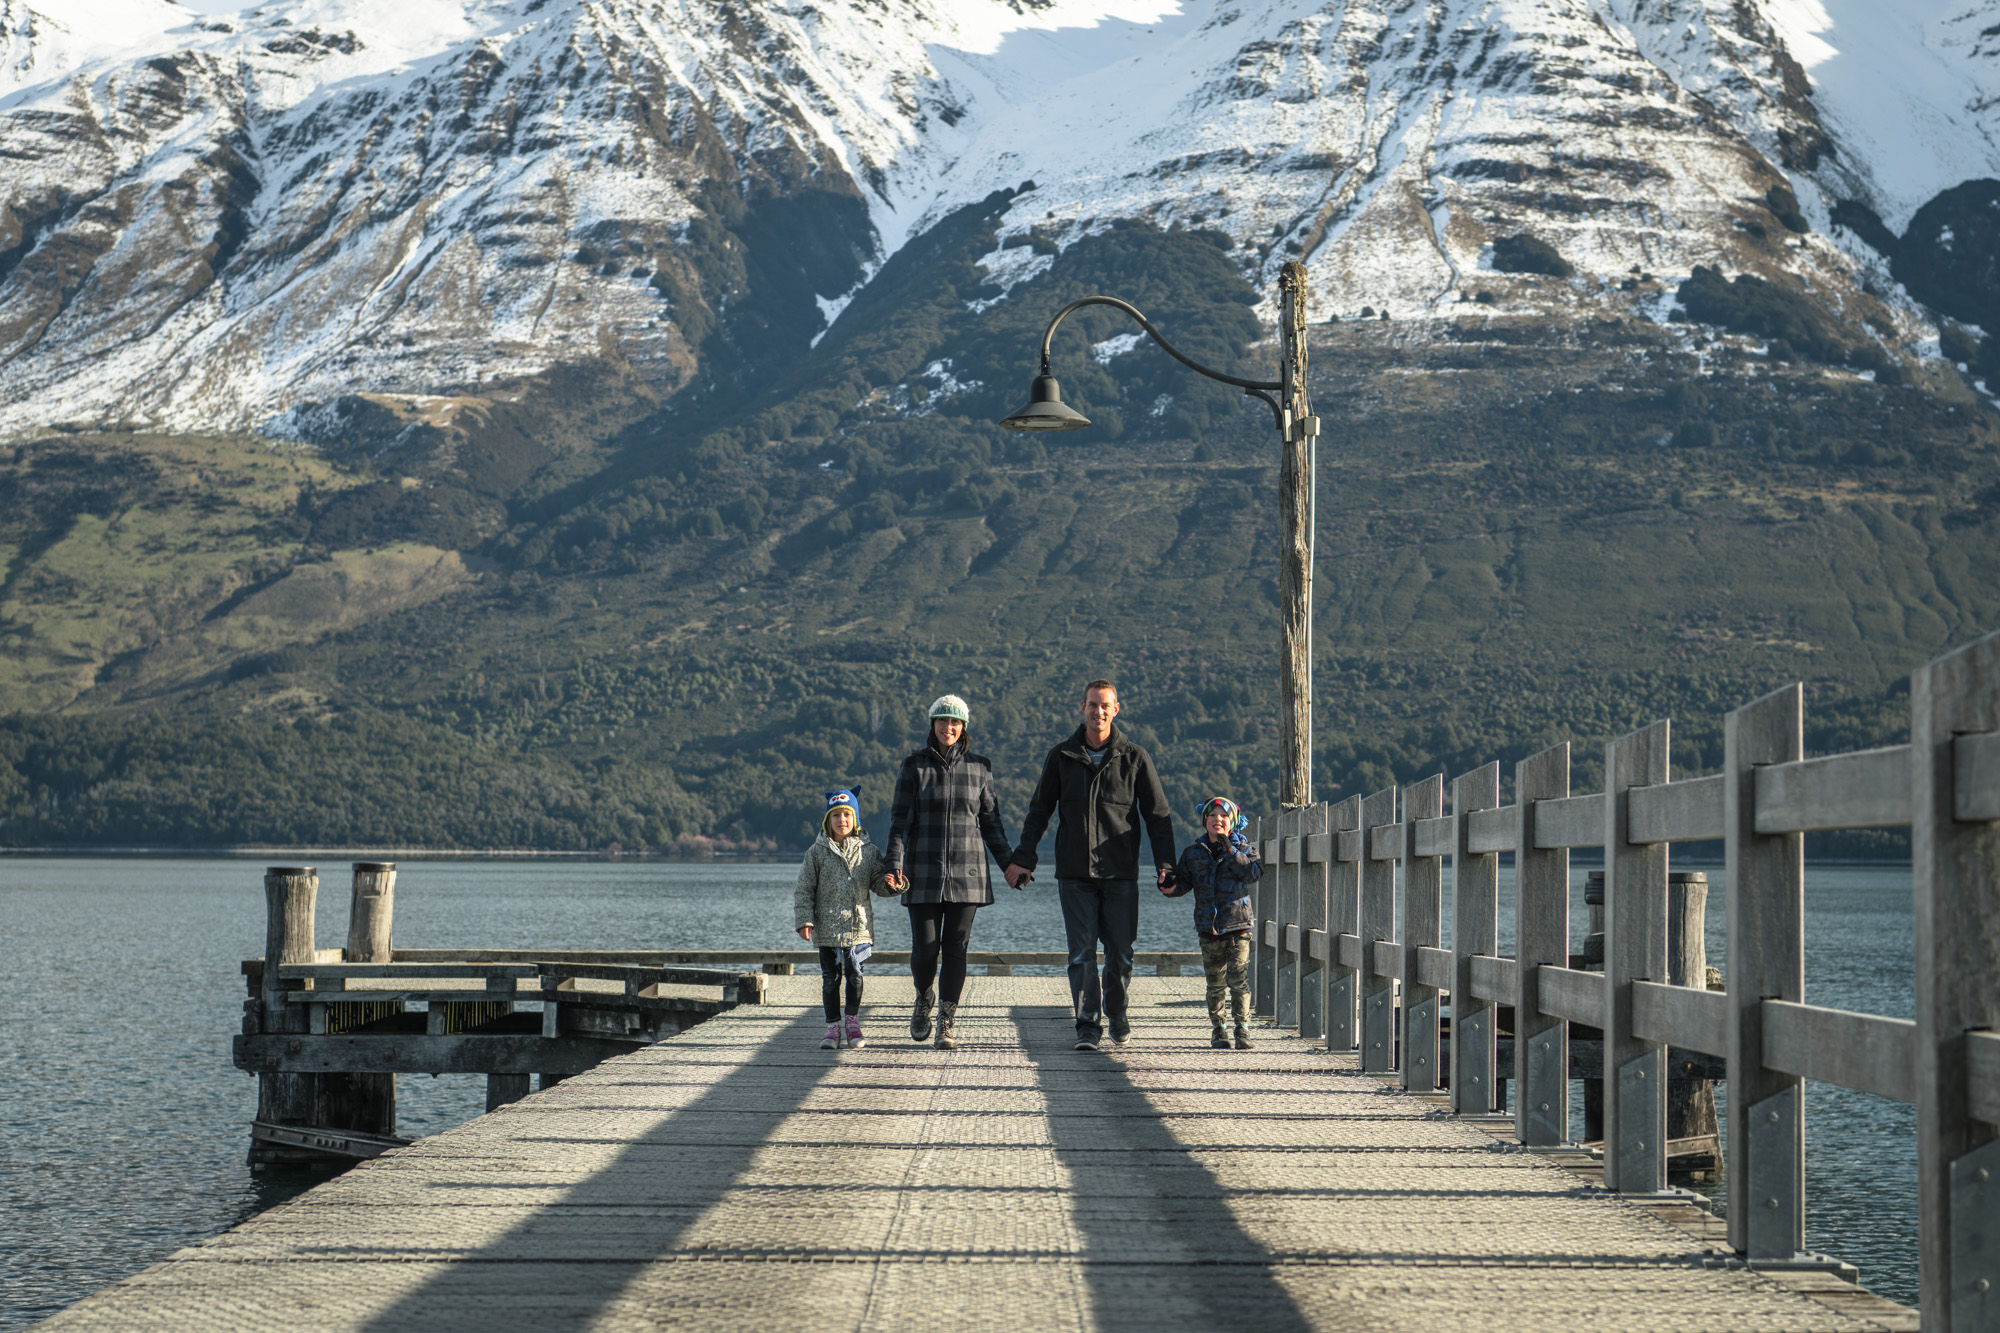 Glneorchy Wharf - Iconic Queenstown Photo Opportunity